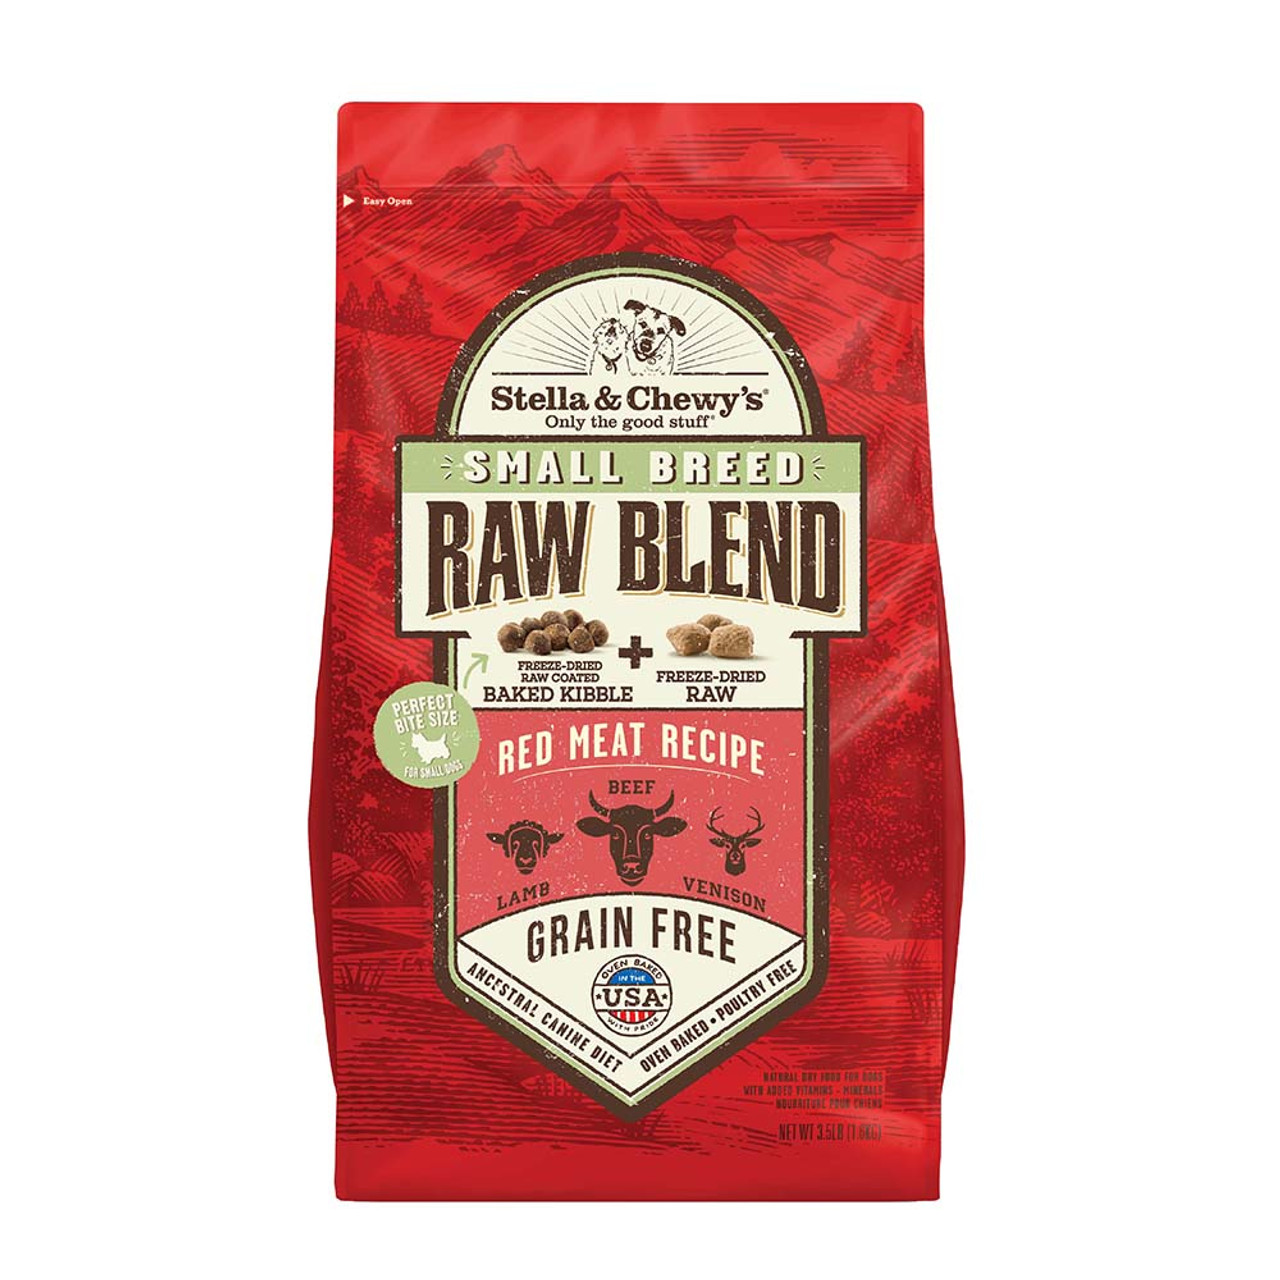 Stella & Chewy's Small Breed Raw Blend Red Meat Recipe Dry Dog Food